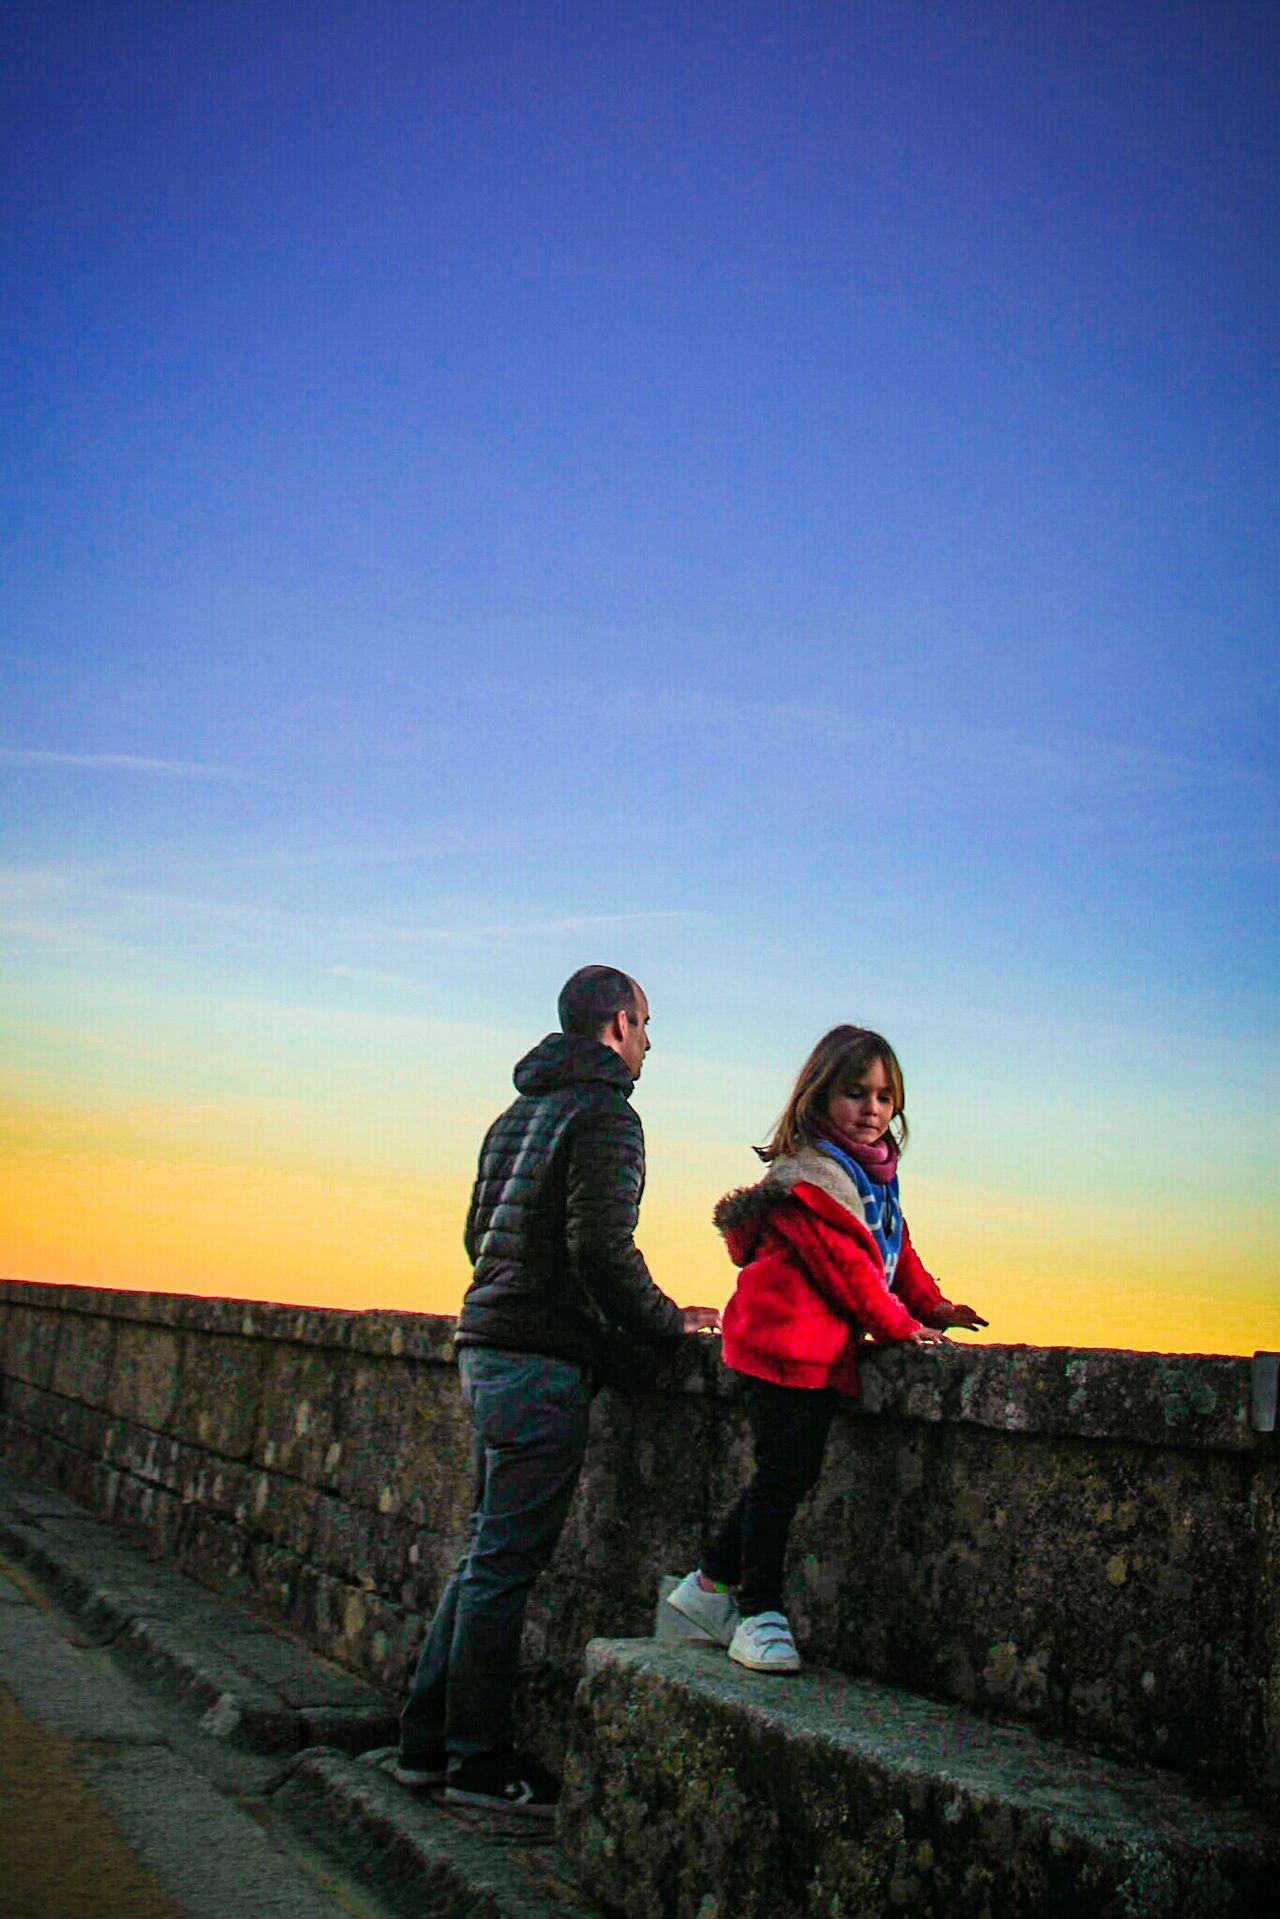 Two People Warm Clothing Blue Winter Travel Destinations People Outdoors Togetherness Sky EyeEm Gallery Check This Out Father And Daughter Sunset Watching The Sunset Enjoying The Moment Elescorial San Lorenzo De El Escorial Knit Hat Scarf Malephotographerofthemonth